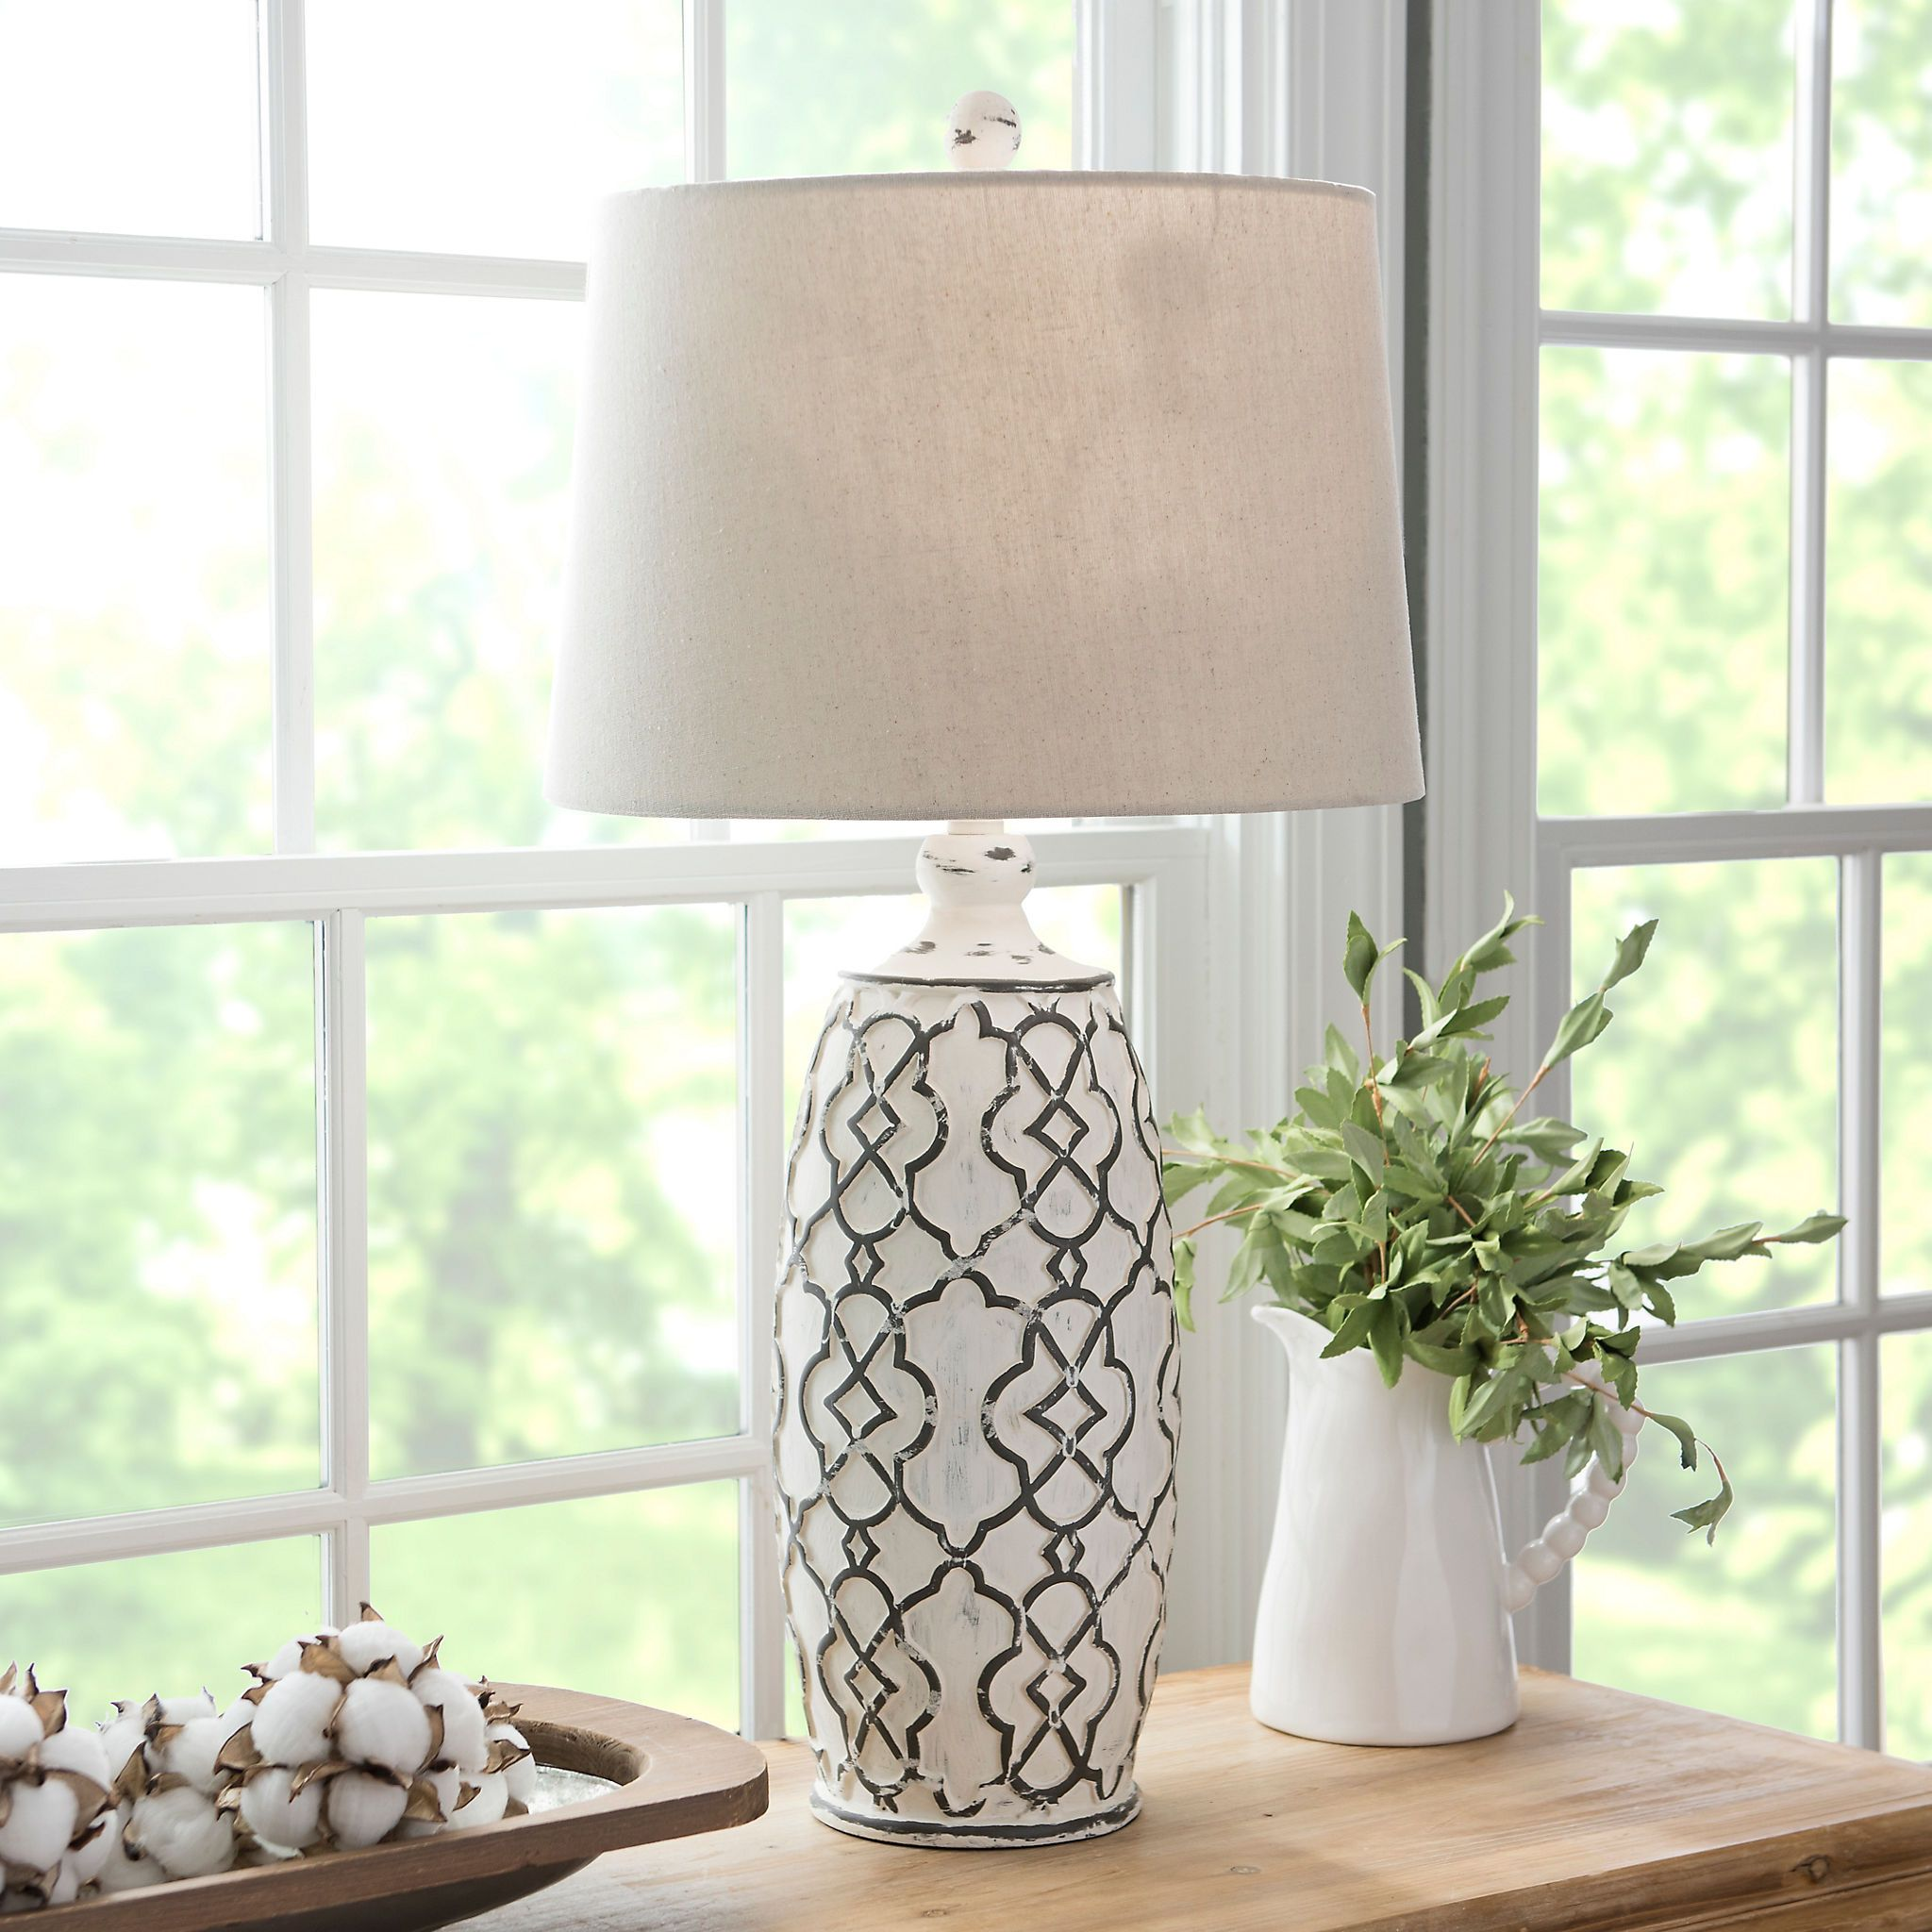 Distressed Cream Lilly Table Lamp Table Lamps Living Room Farmhouse Table Lamps Lamps Living Room